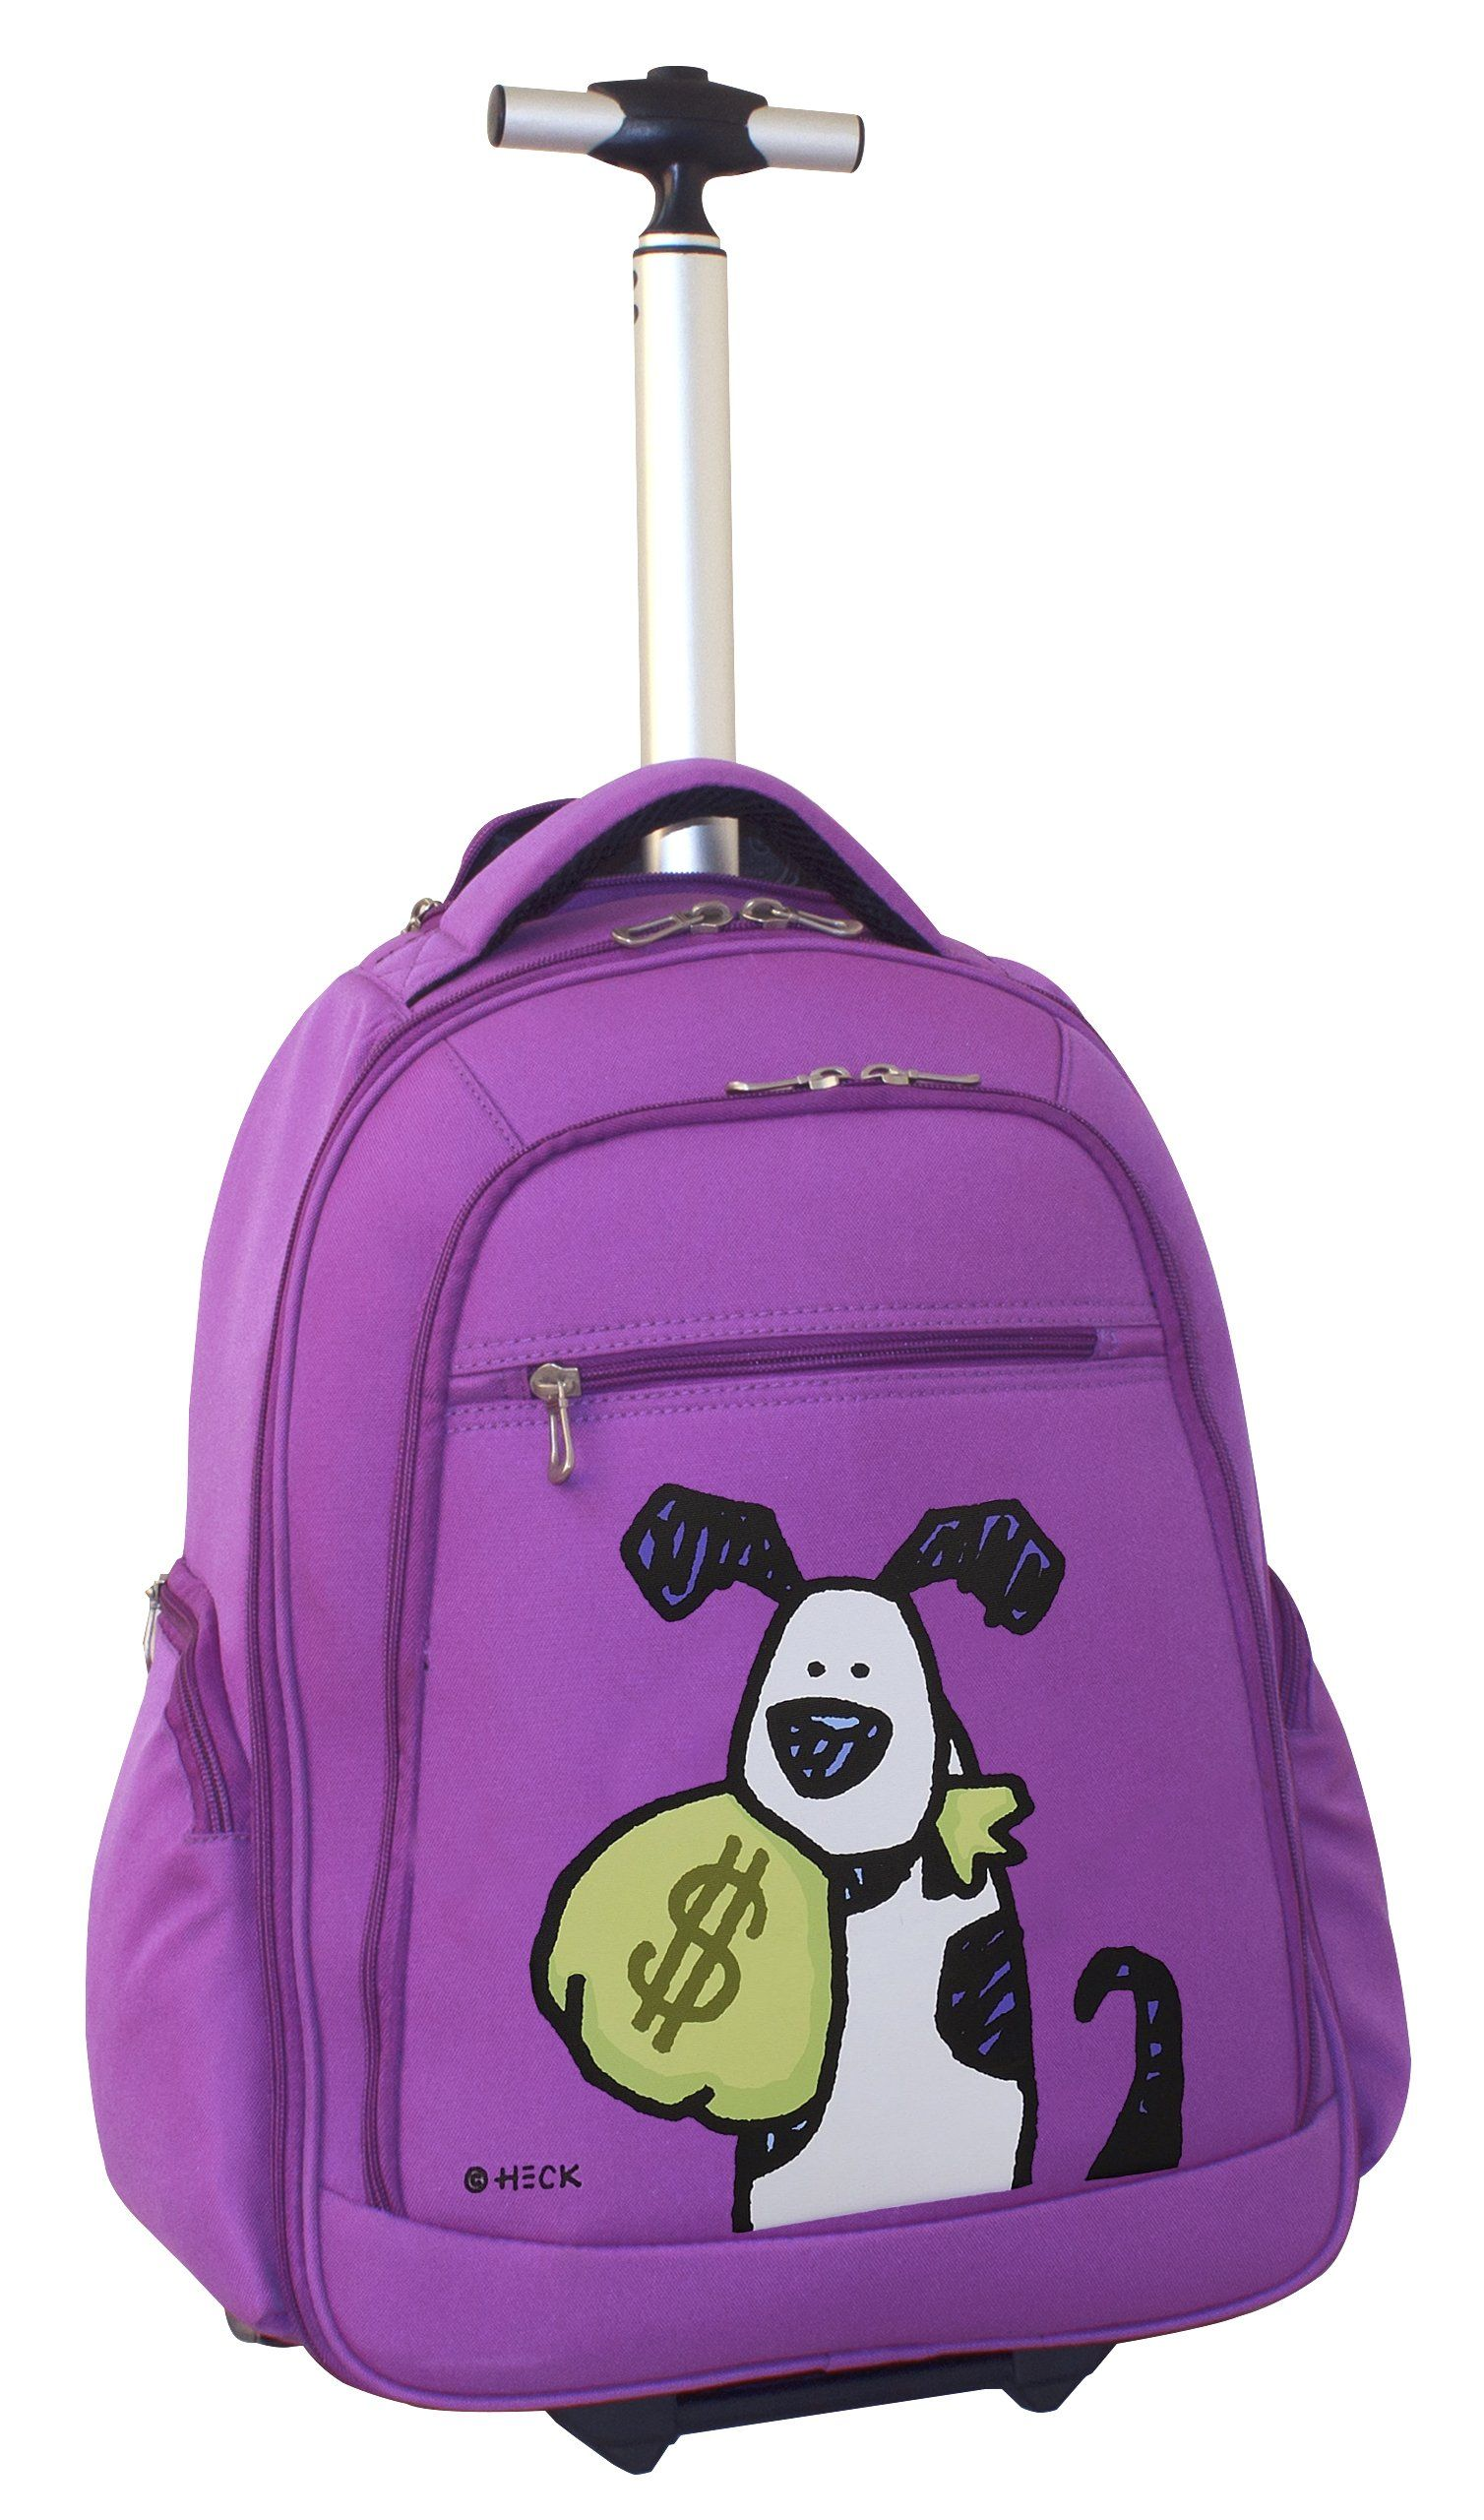 Ed Heck Money Doggie Wheeled Backpack 20 Inch, Purple, One Size ...